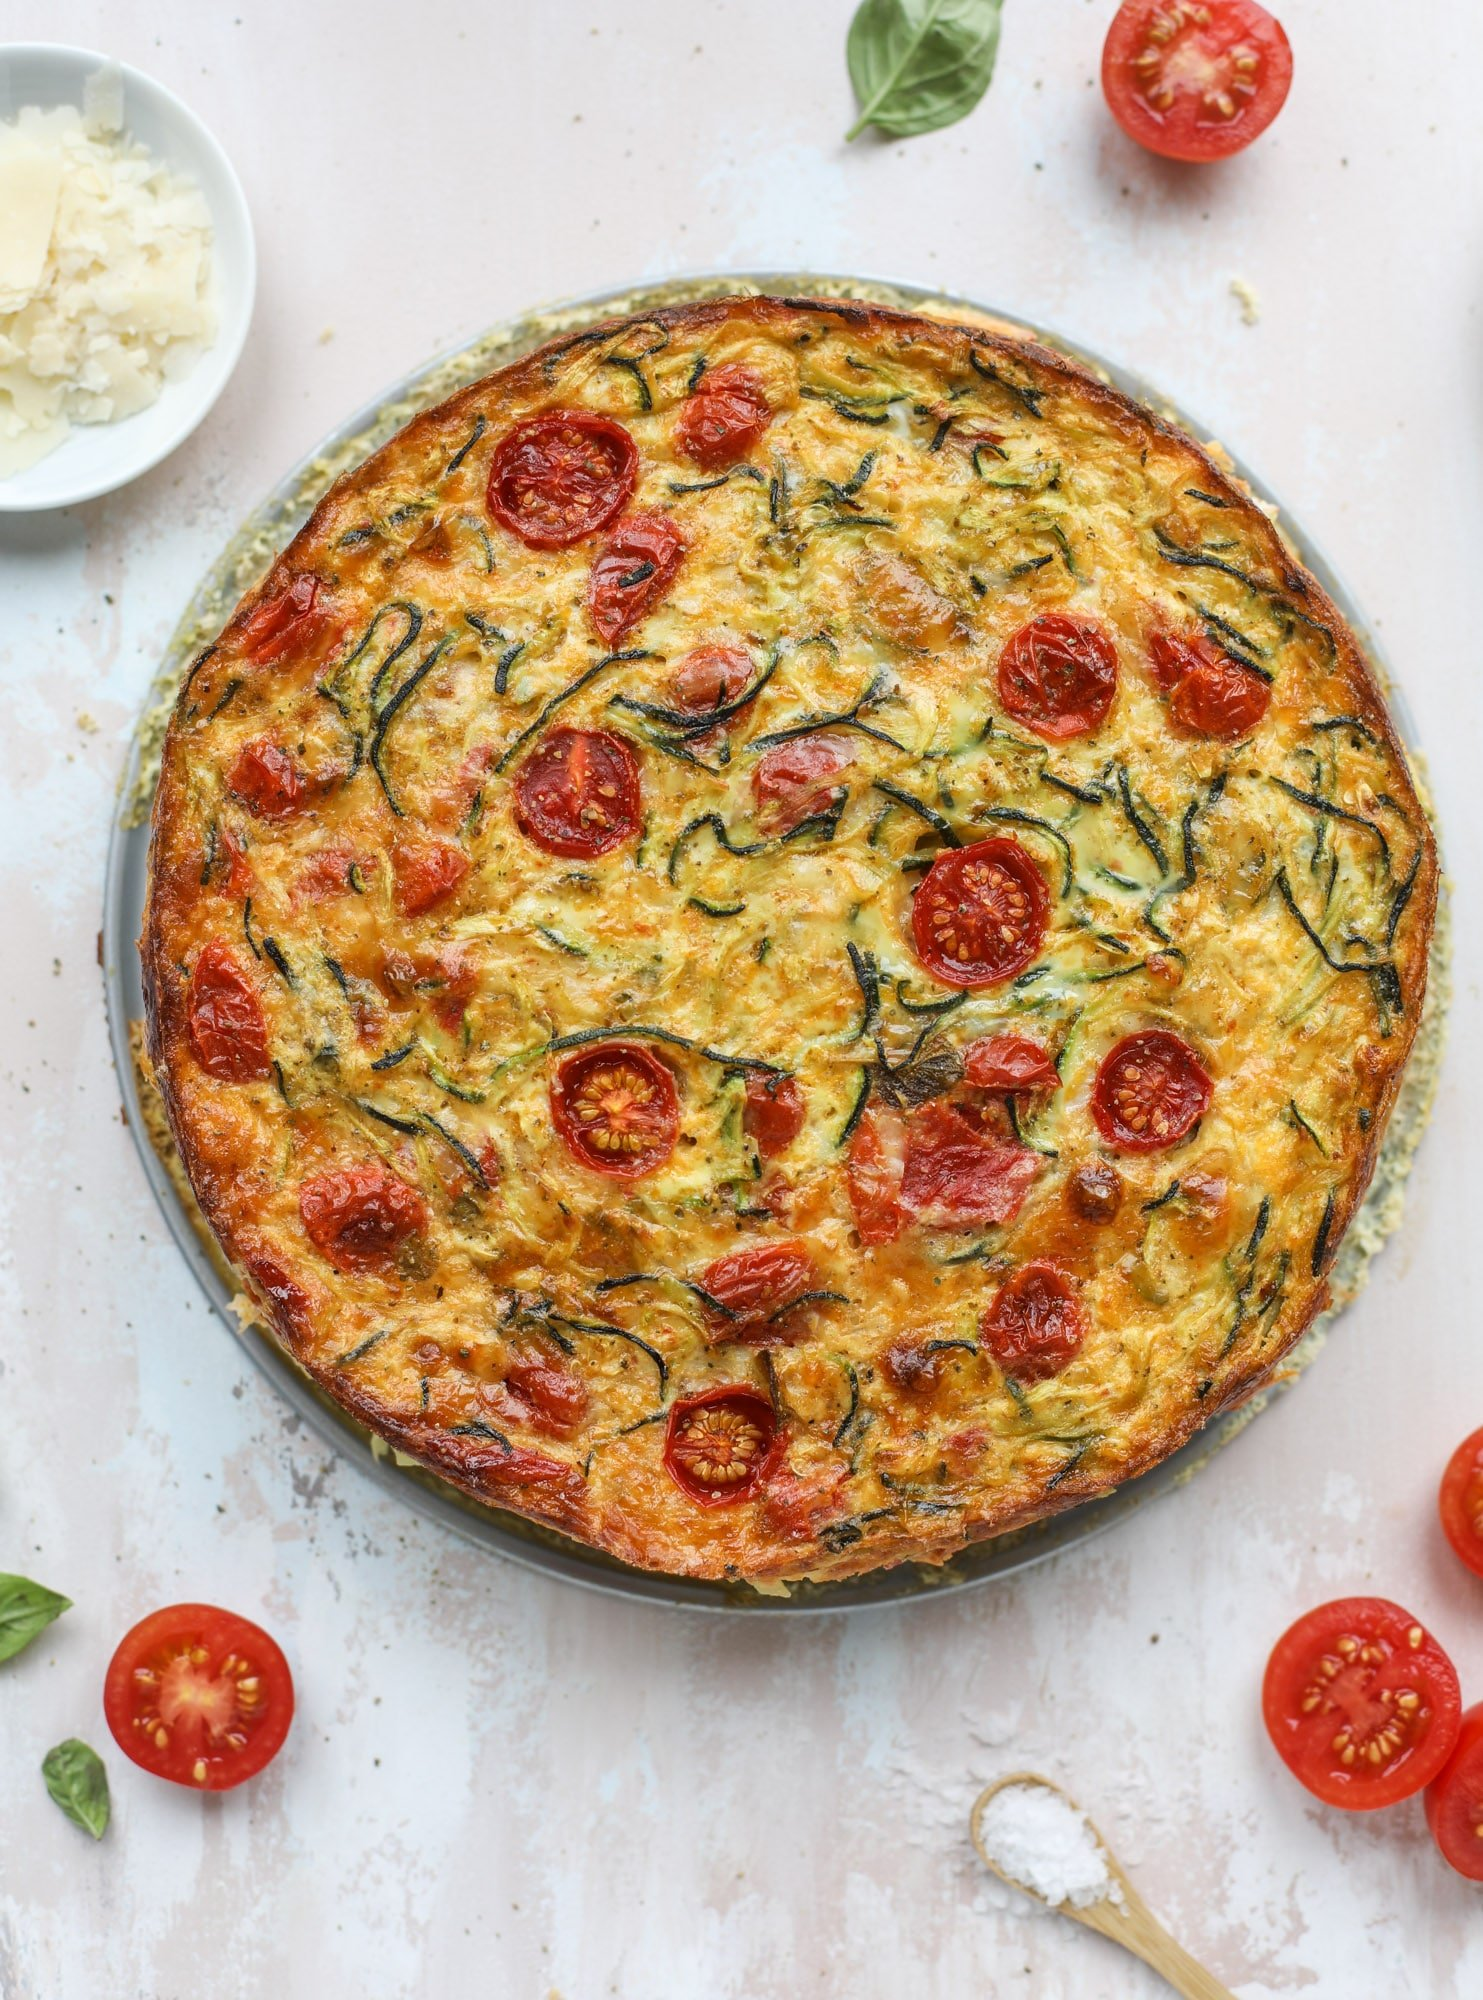 This zucchini pie recipes is absolutely divine and perfect for breakfast or dinner! Completely with garlic and blistered tomatoes, it combines cheese and egg to make a to-die-for frittata-like dish that can be eaten hot or cold! I howsweeteats.com #zucchini #pie #tomatoes #eggs #recipes #garden #summer